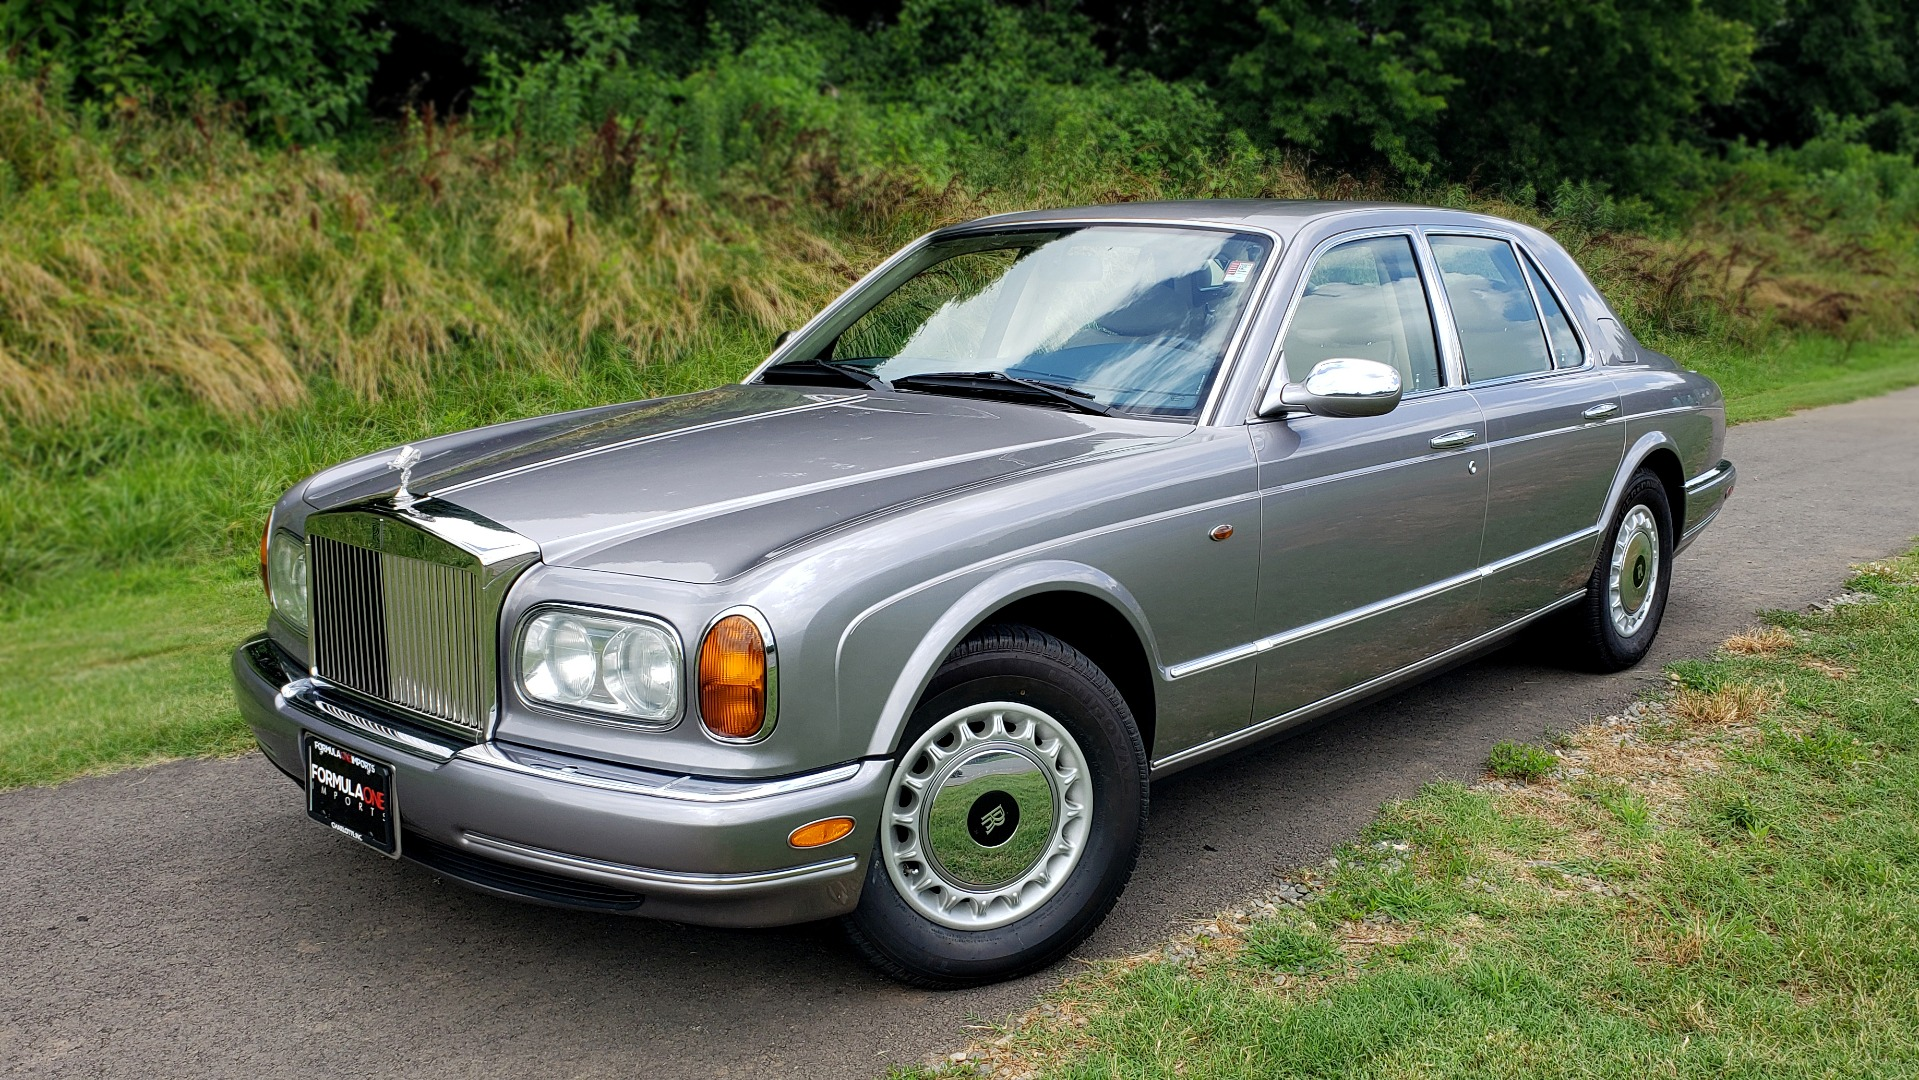 Used 1999 Rolls-Royce SILVER SERAPH 5.4L V12 / AUTO TRANS / LOW MILES / VERY CLEAN! for sale $34,999 at Formula Imports in Charlotte NC 28227 1